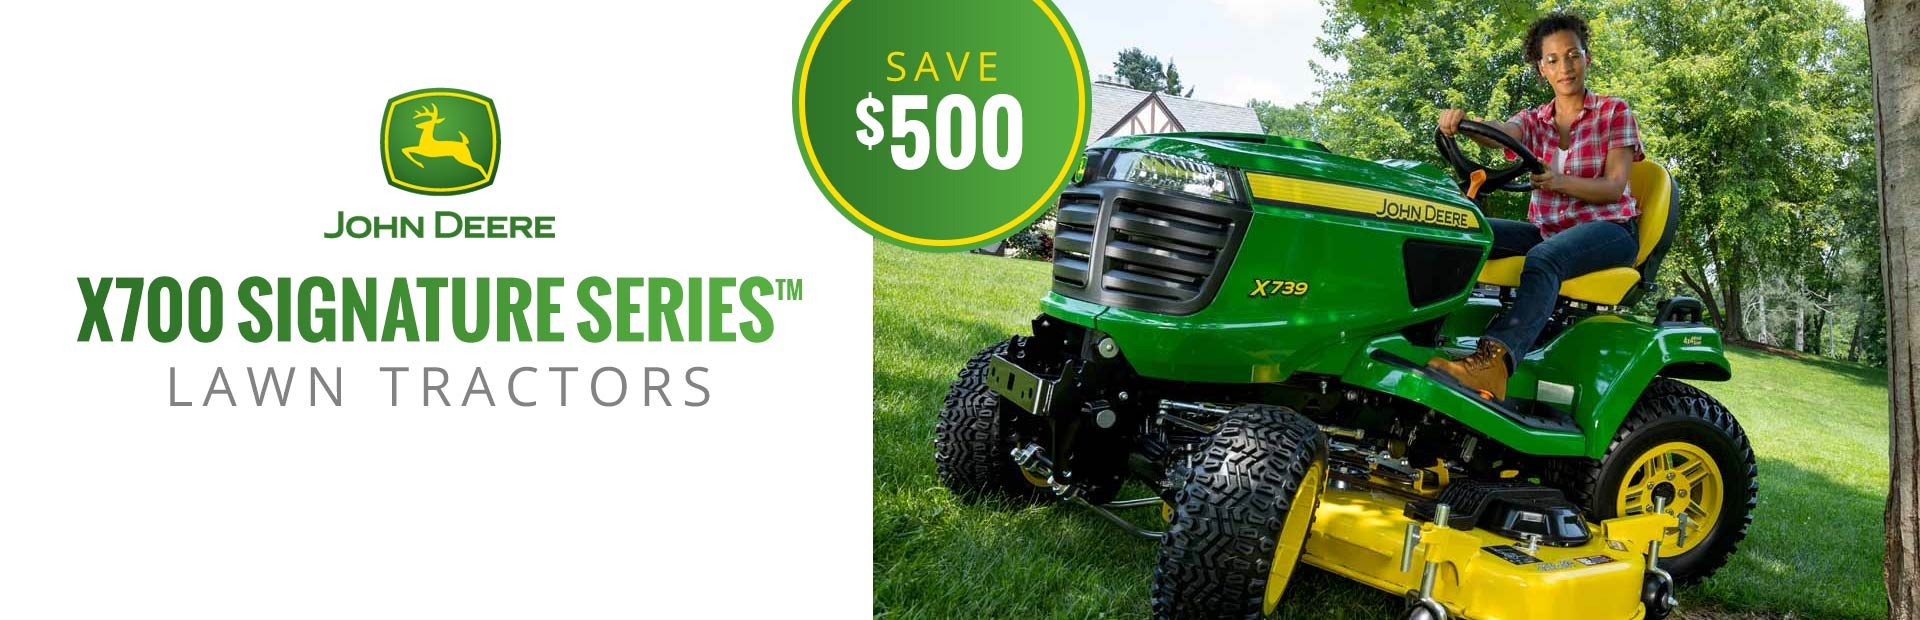 X700 Signature Series™ Lawn Tractors - Save $500